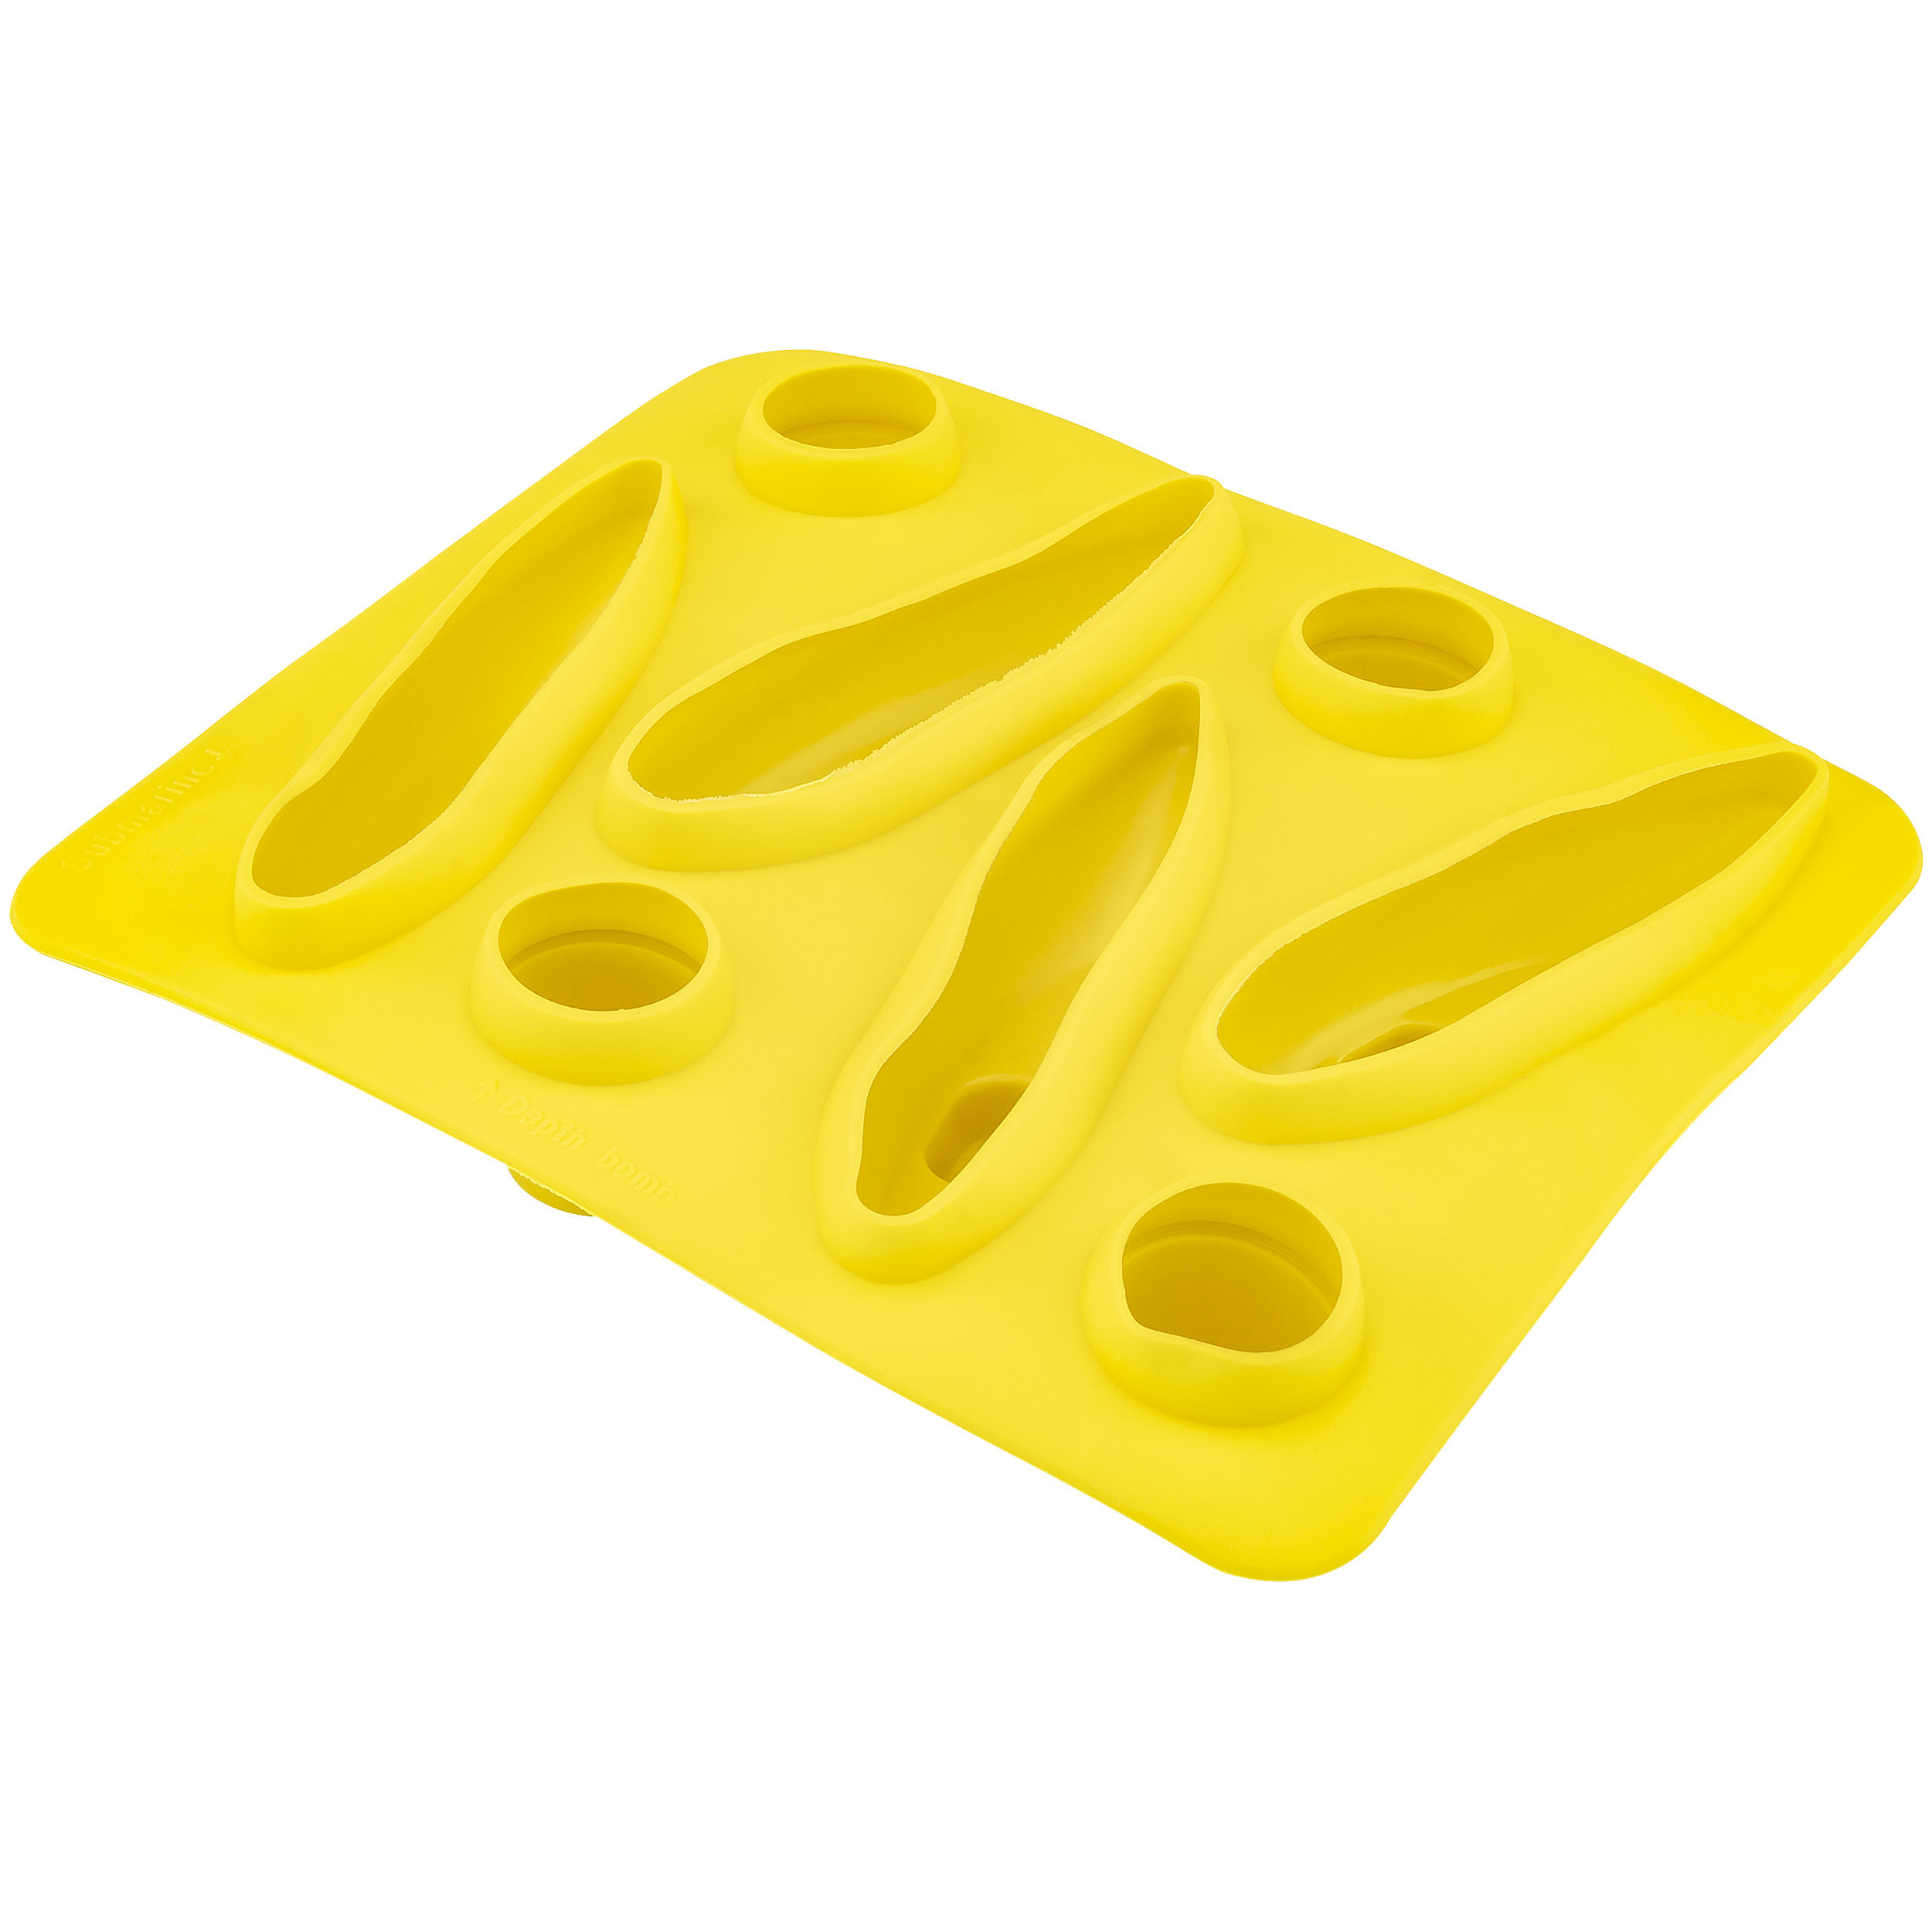 Fairly Odd Novelties FON-10005 Submarine Shape Flexible 8 Ice Cube Tray Mold Yellow Rubber Novelty Gag Gift, One Size,